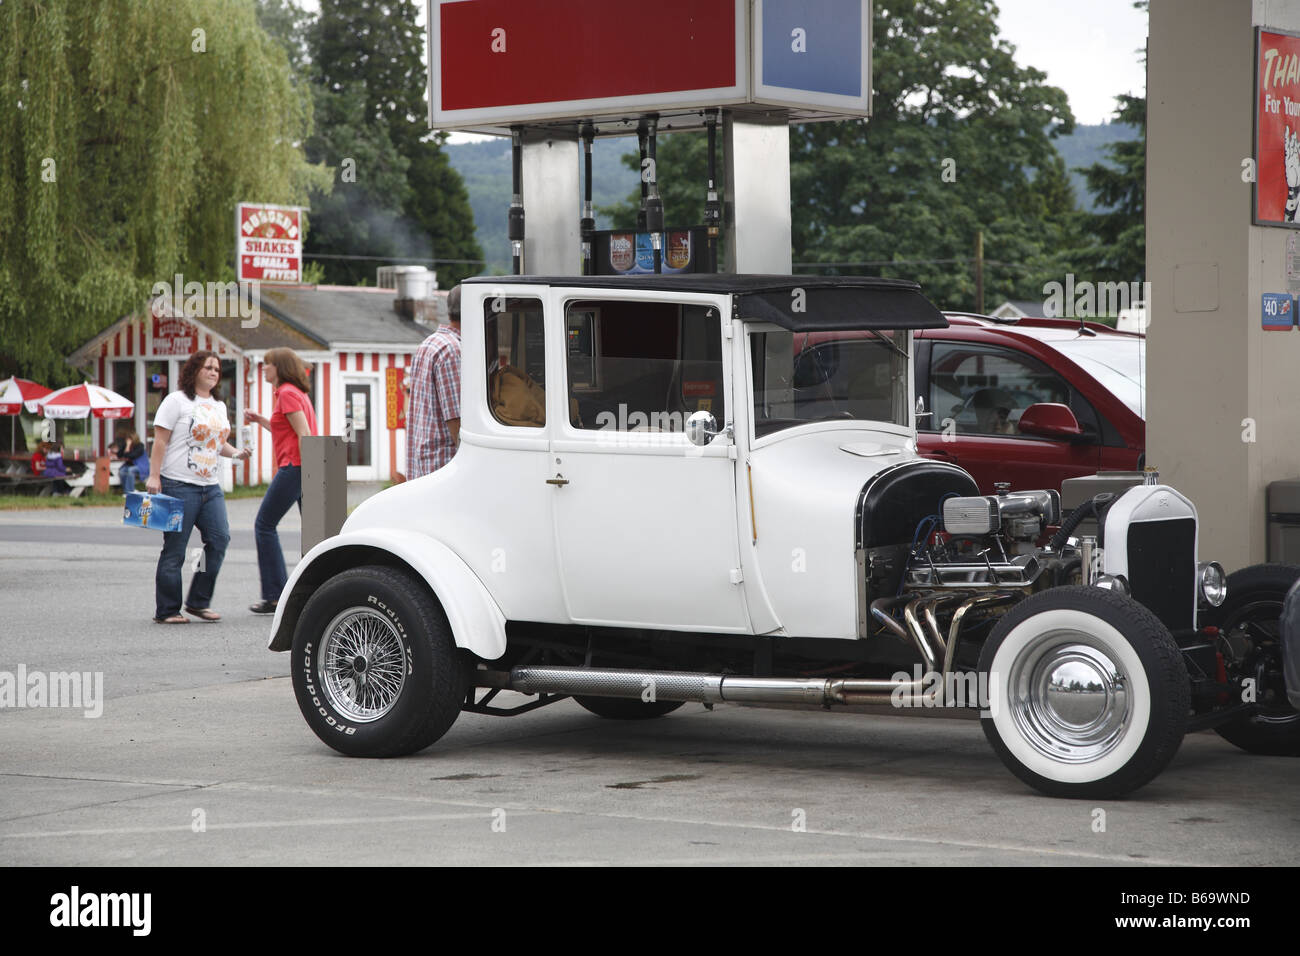 US USA United States Vereinigte Staaten Staat Of Von America Amerika State Washington Fall City Classic Car - Stock Image